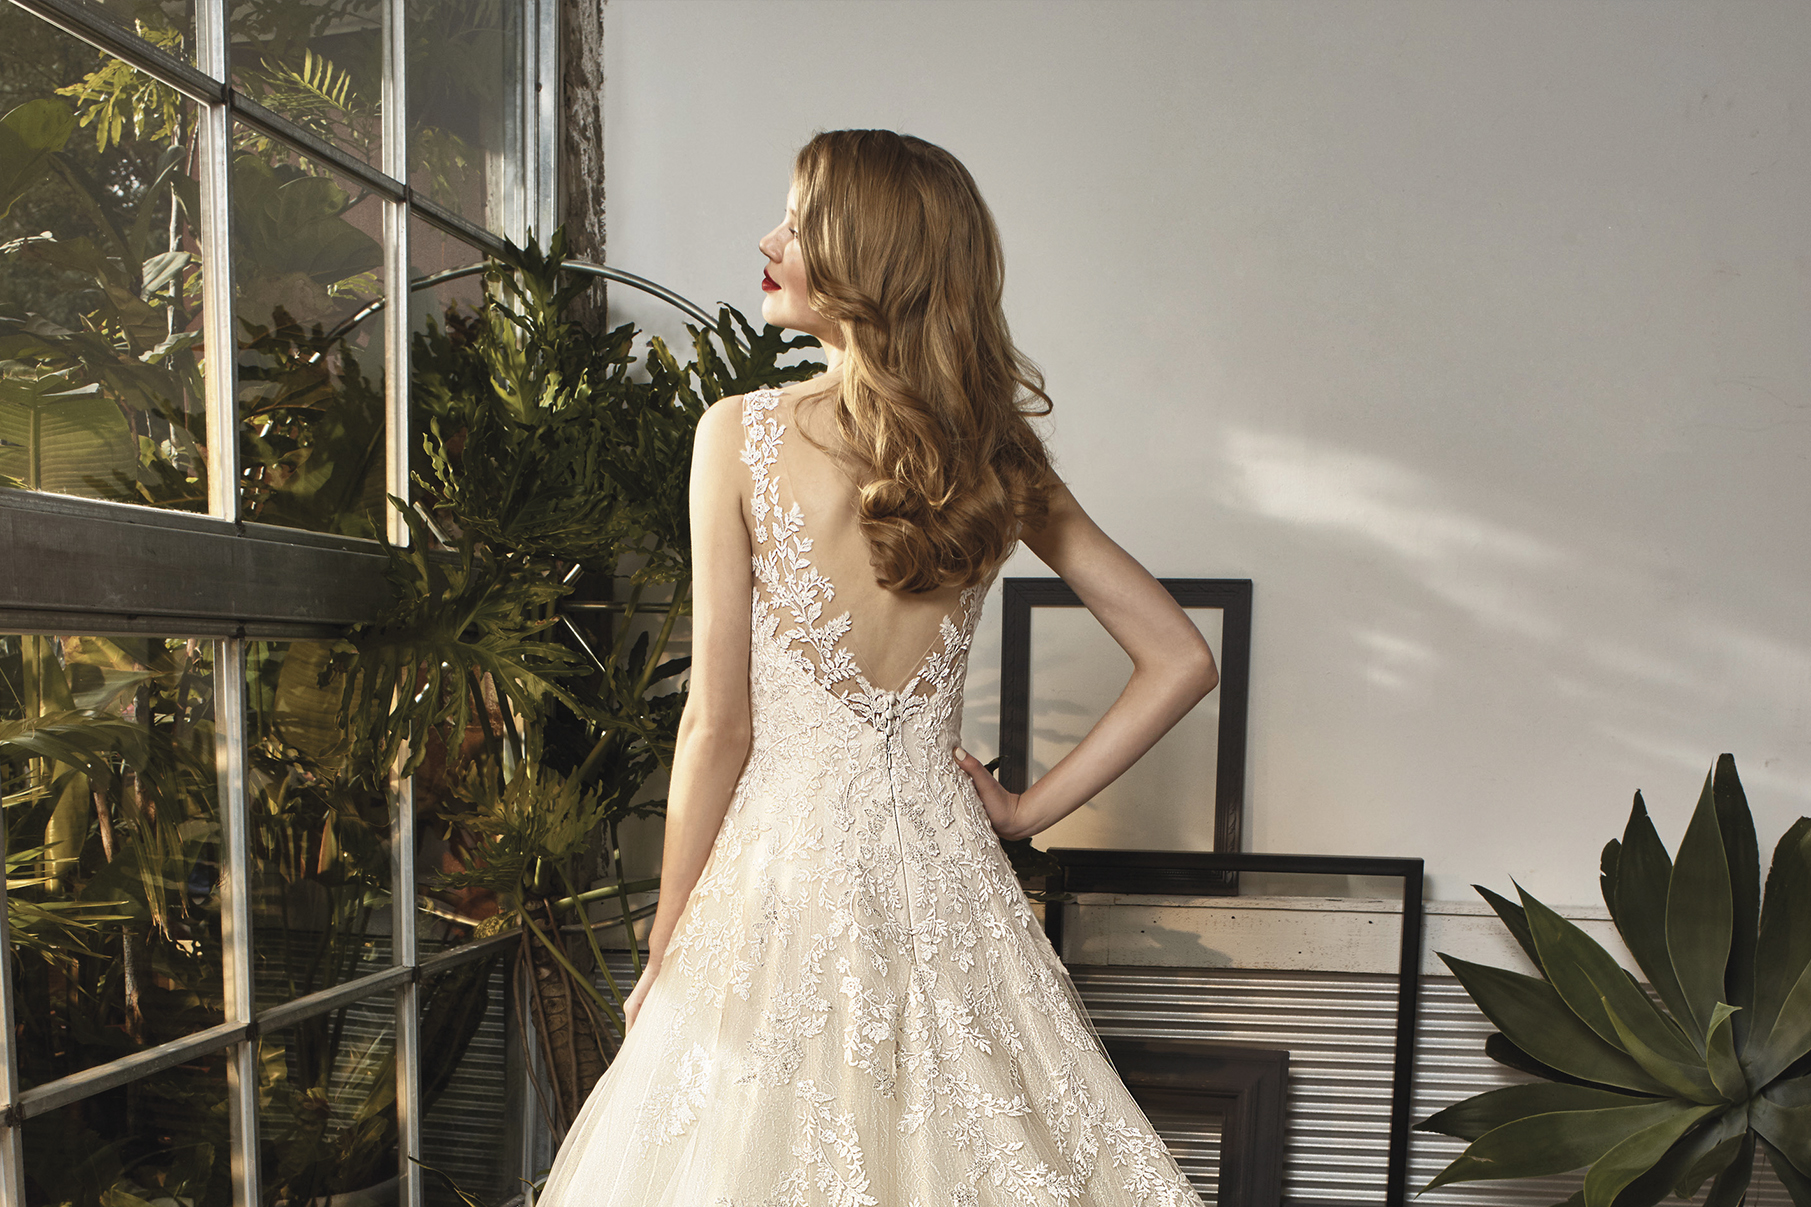 BELLA SULIZE Excellent Quality Luxurious Fabrics Superb Fit Designer Wedding Dresses At An Affordable Price